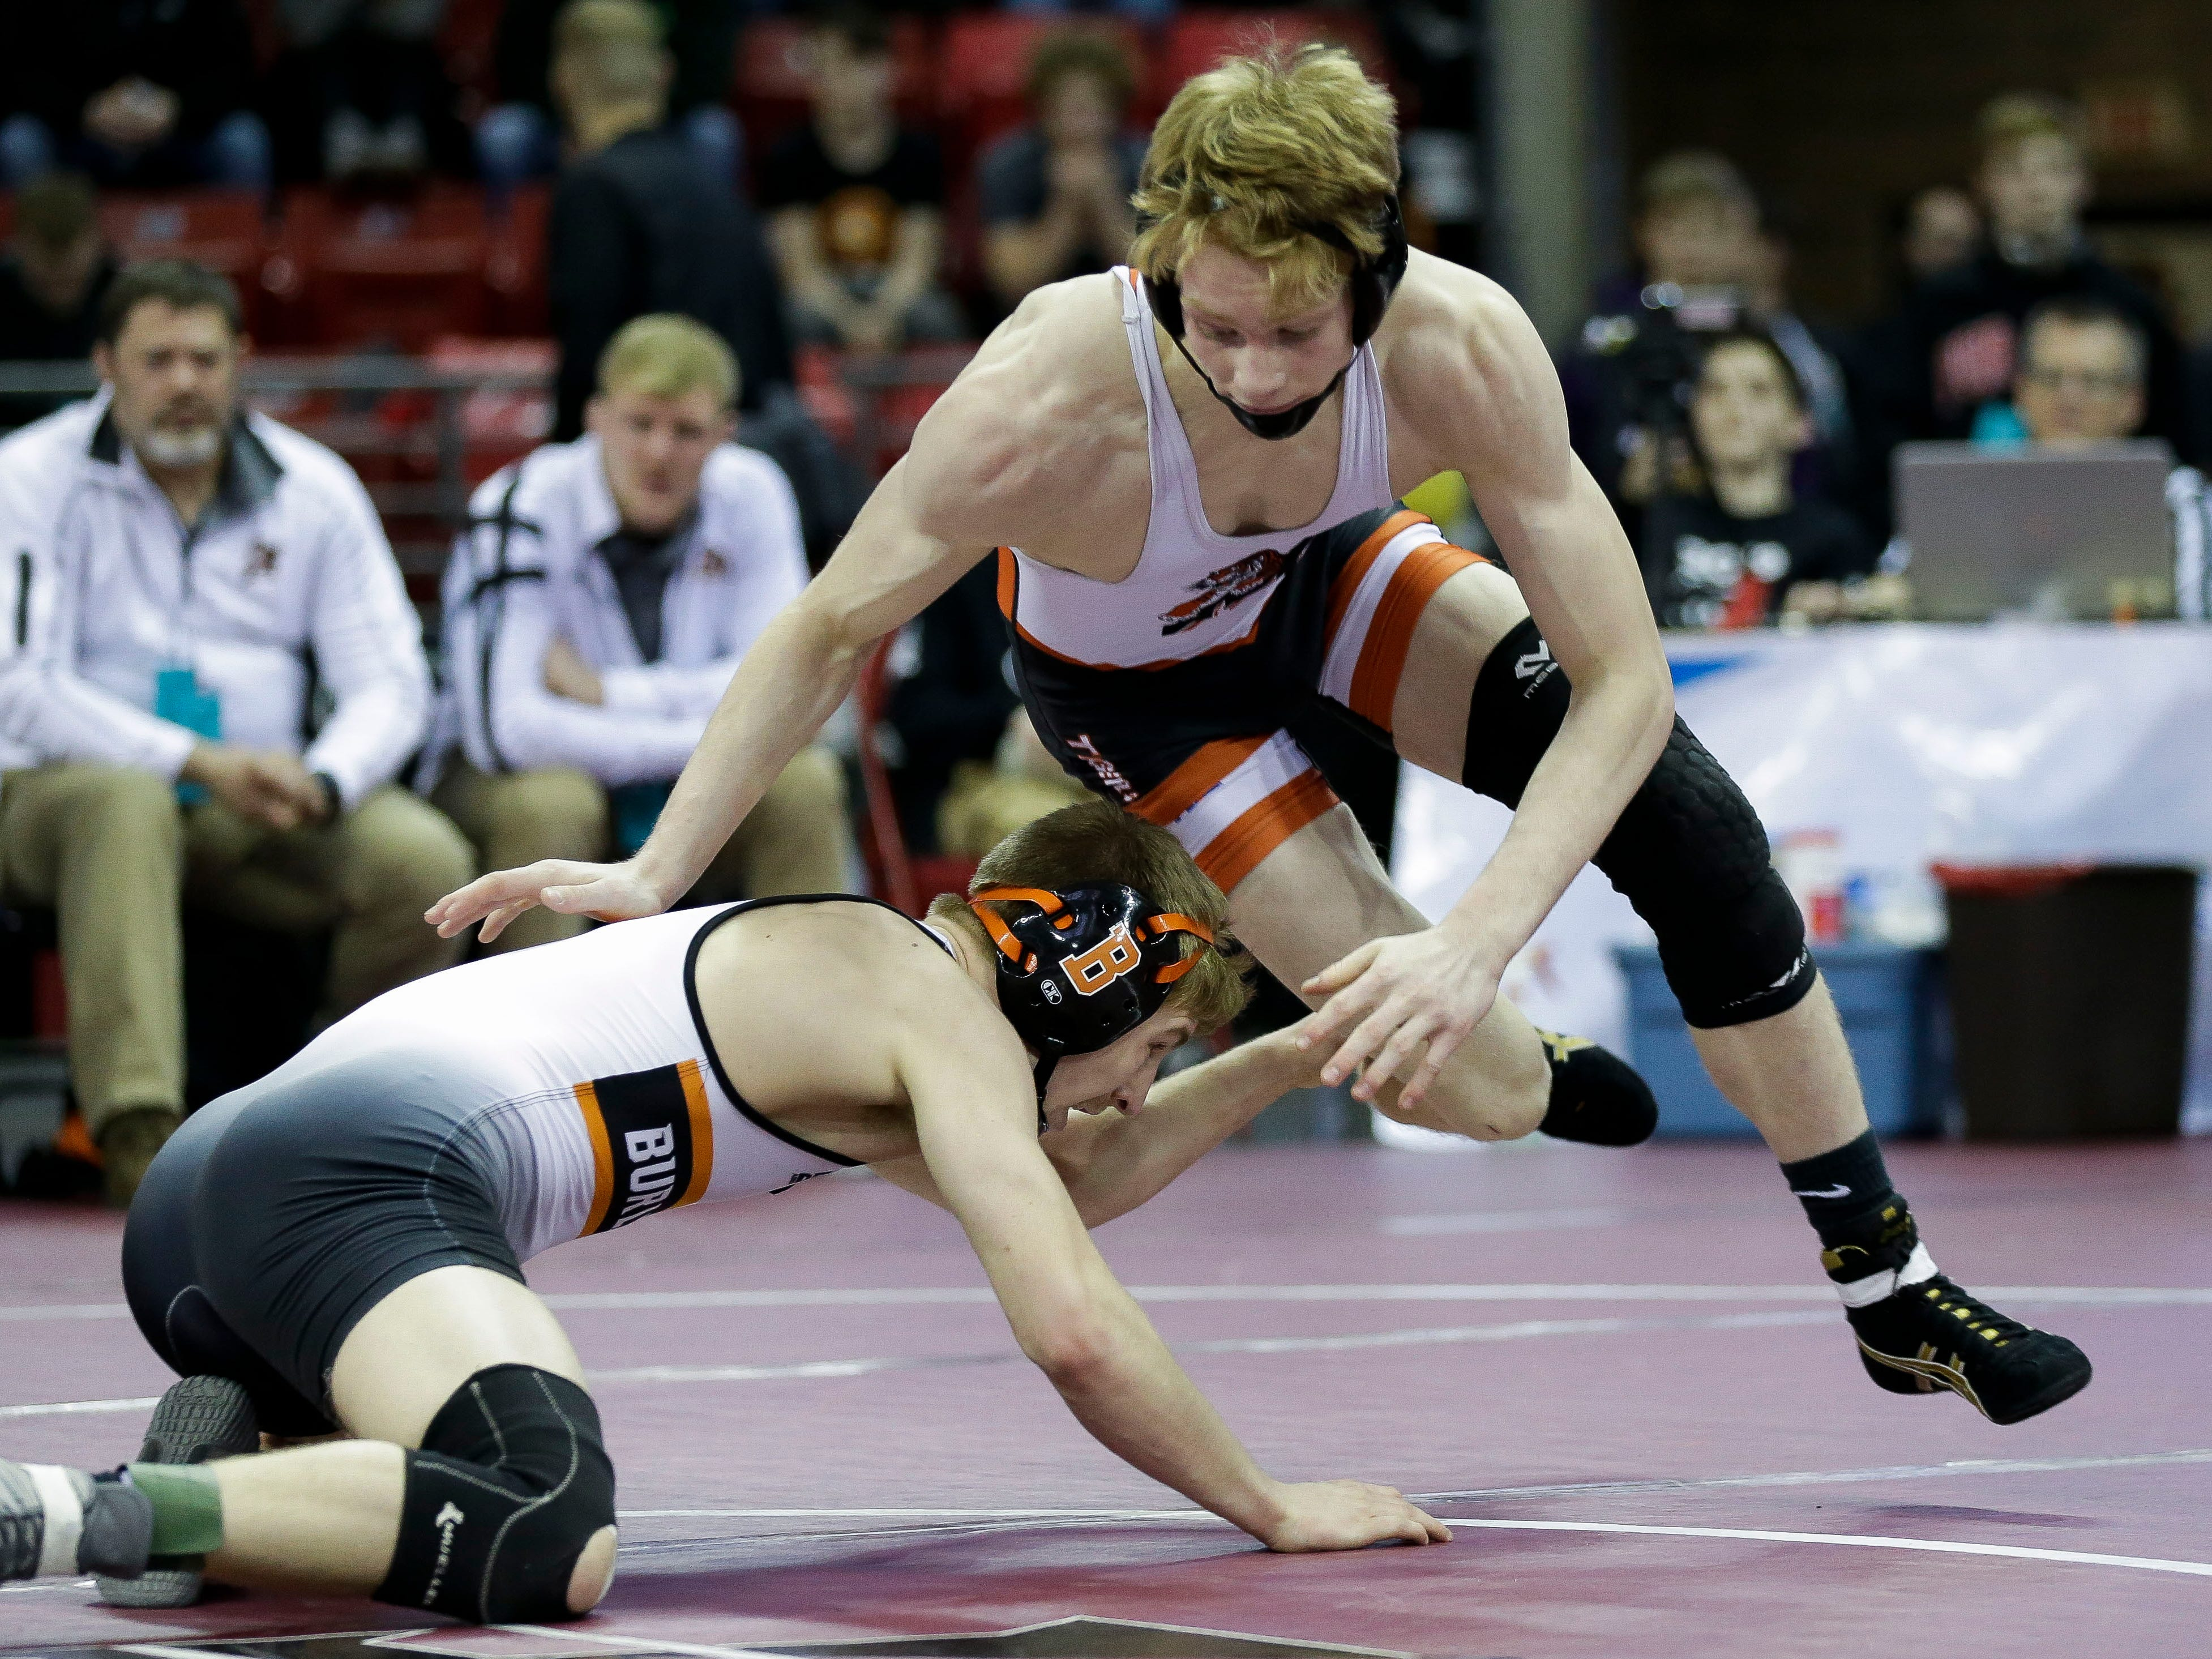 Marshfield's Ryan Dolezal wrestles against Burlington's Zach Weiler in a Division 1 132-pound quarterfinal match during the WIAA state wrestling tournament on Thursday, February 21, 2019, at the Kohl Center in Madison, Wis.